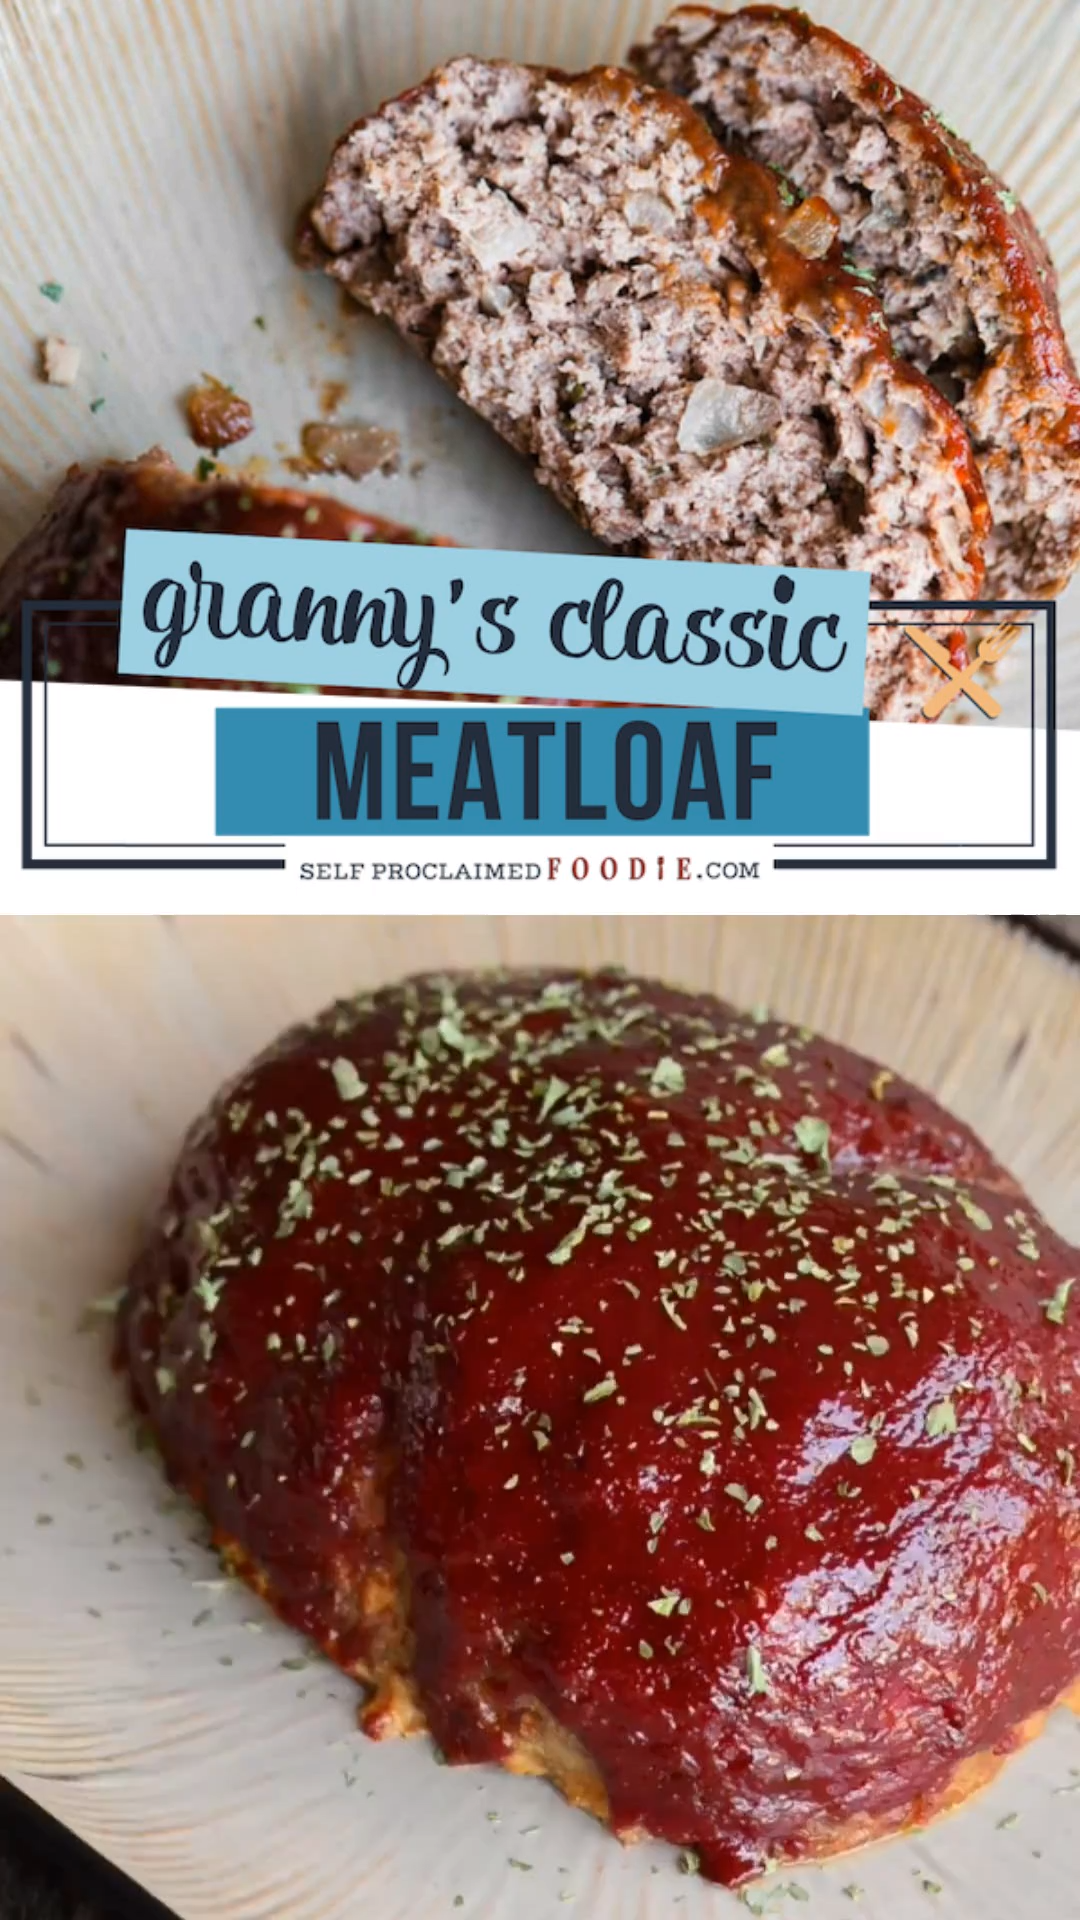 GRANNY'S CLASSIC MEATLOAF